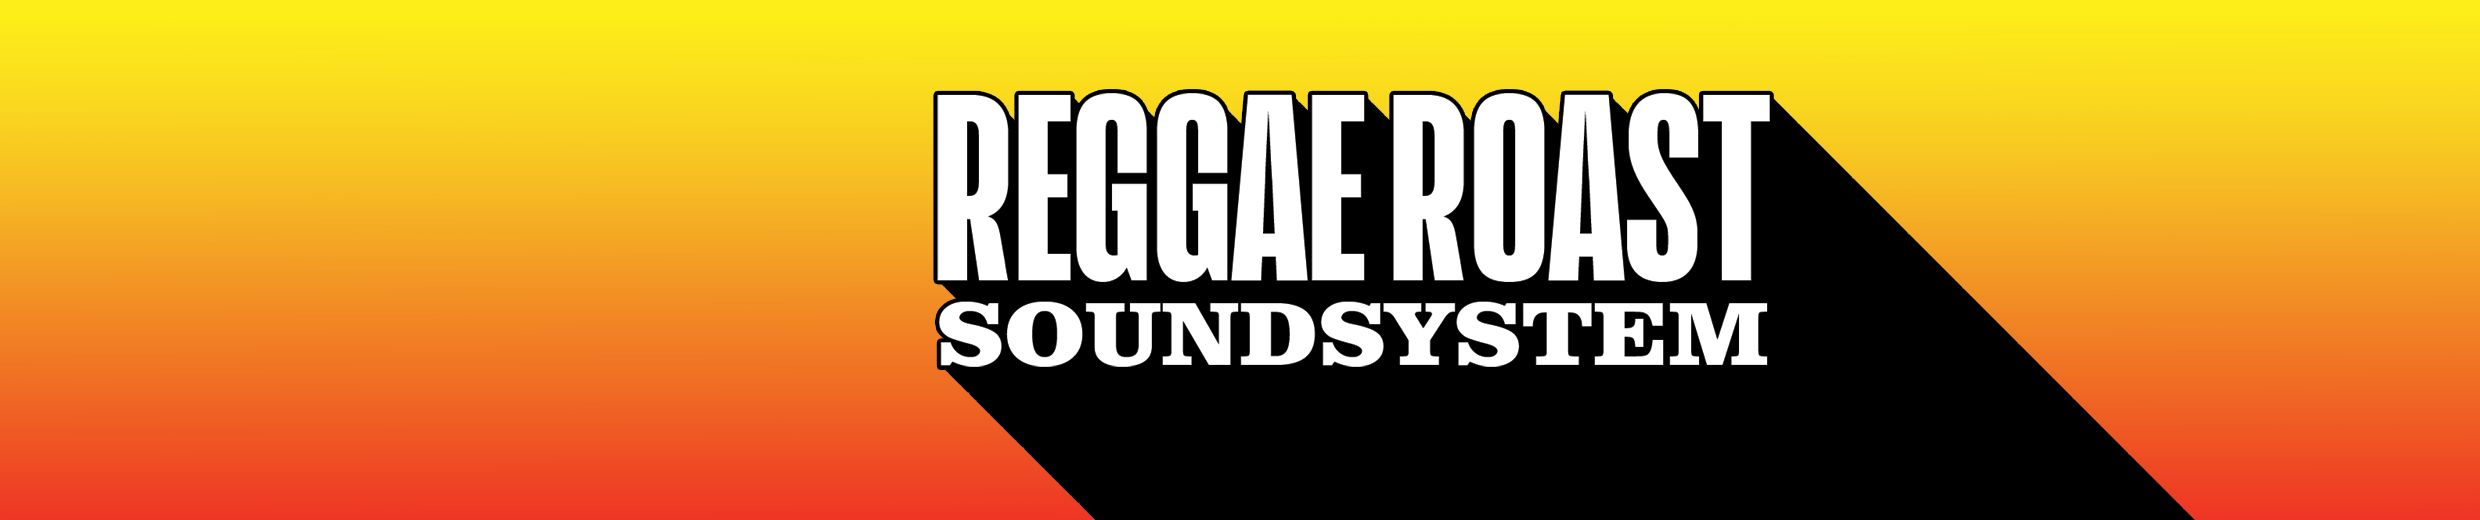 ReggaeRoast | Reggae Roast | Free Listening on SoundCloud